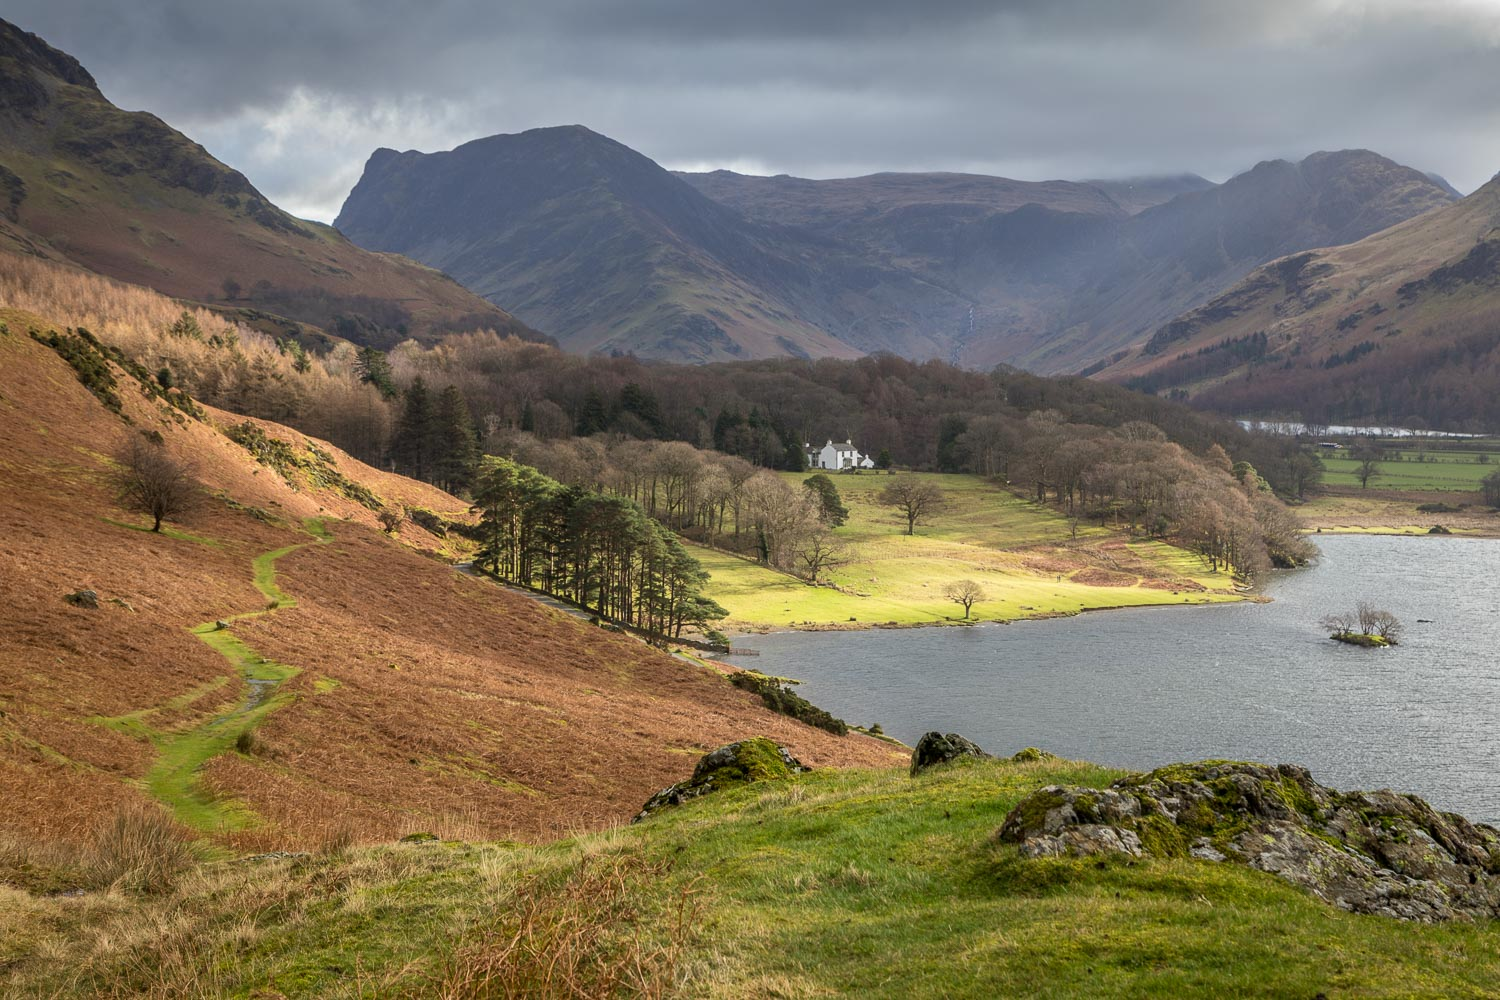 Crummock Water, Fleetwith Pike, Haystacks, Wood House